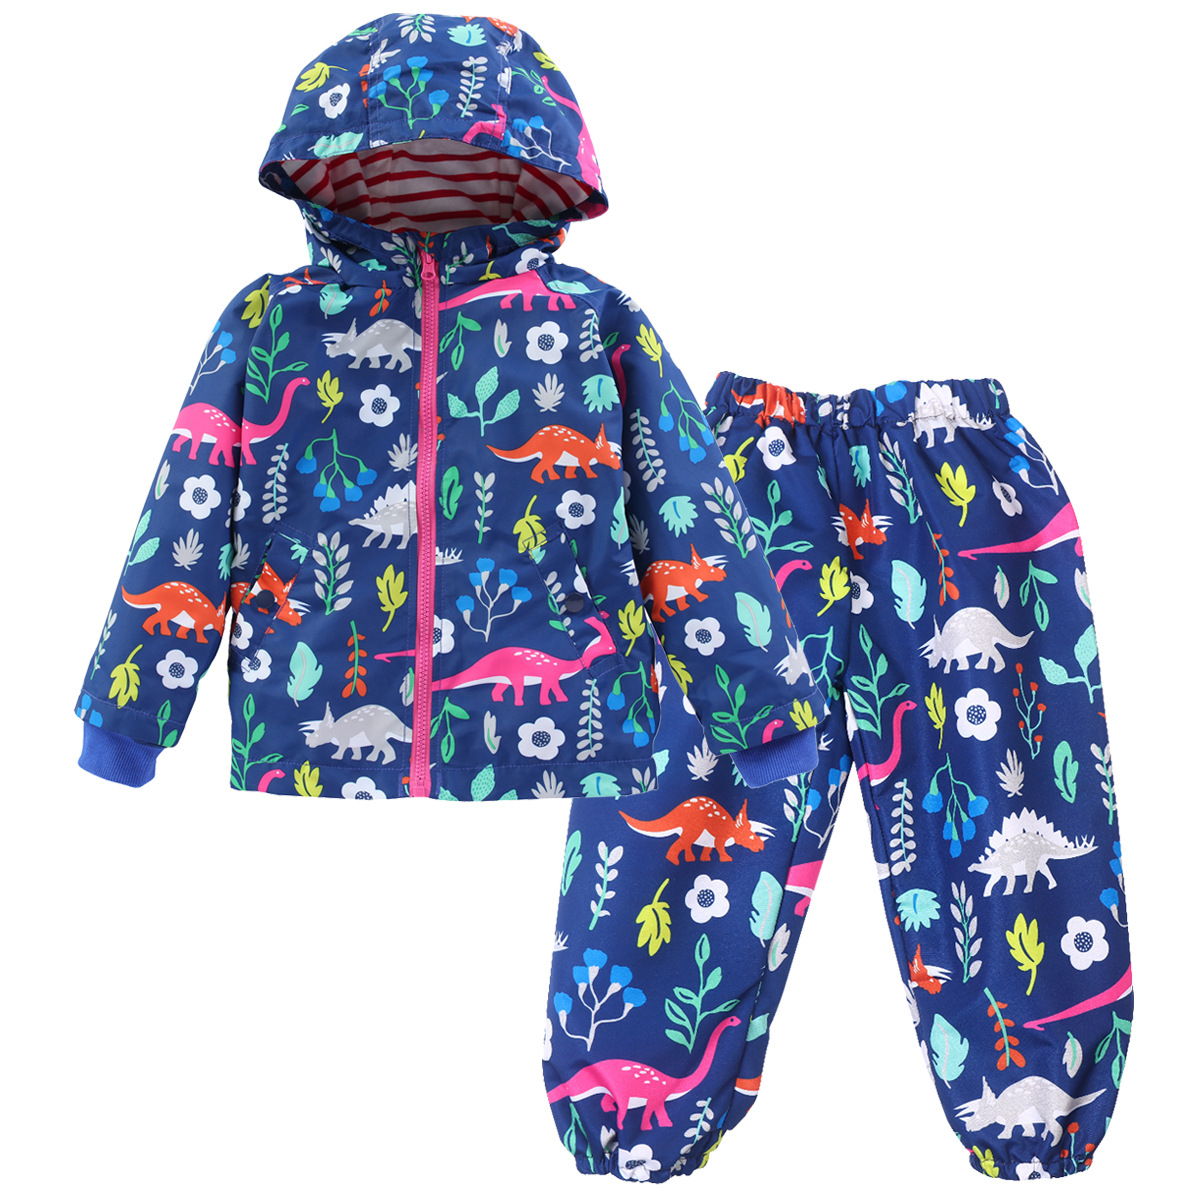 S292 New Fashion Spring and Autumn children's clothing Boy &Girl Pants Suit Hooded Casual Suit Waterproof Jacket Zipper Coat Set дозатор для жидкого мыла primanova tassy 8 6 22 см